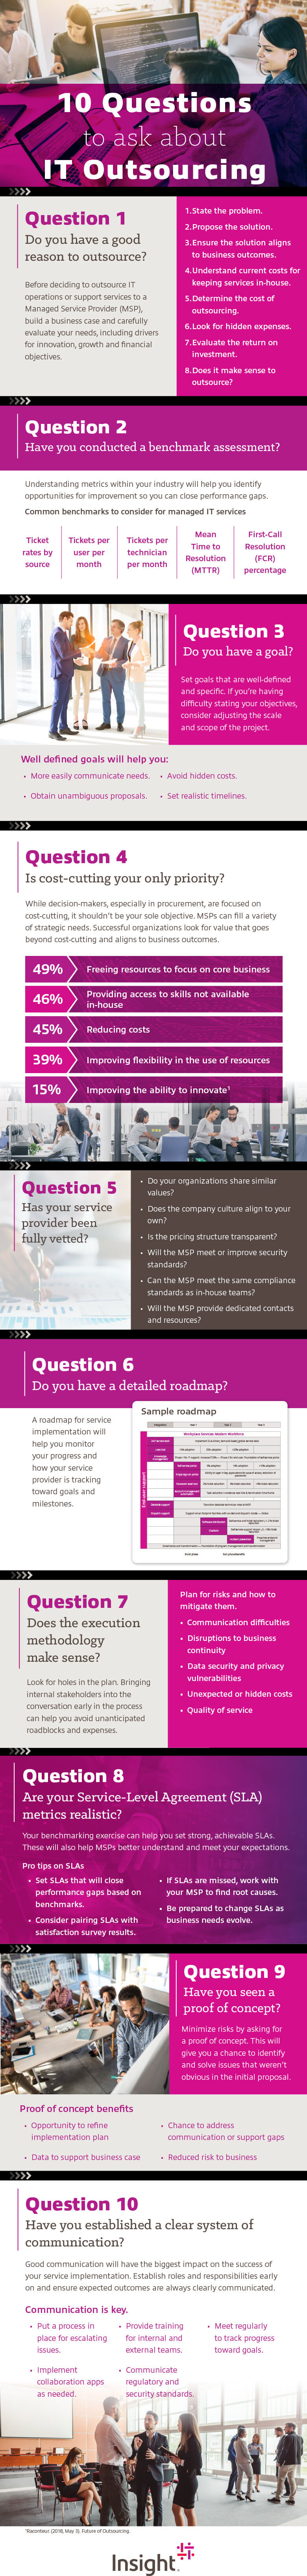 Infographic displaying 10 Questions to Ask About IT Outsourcing Translated below.